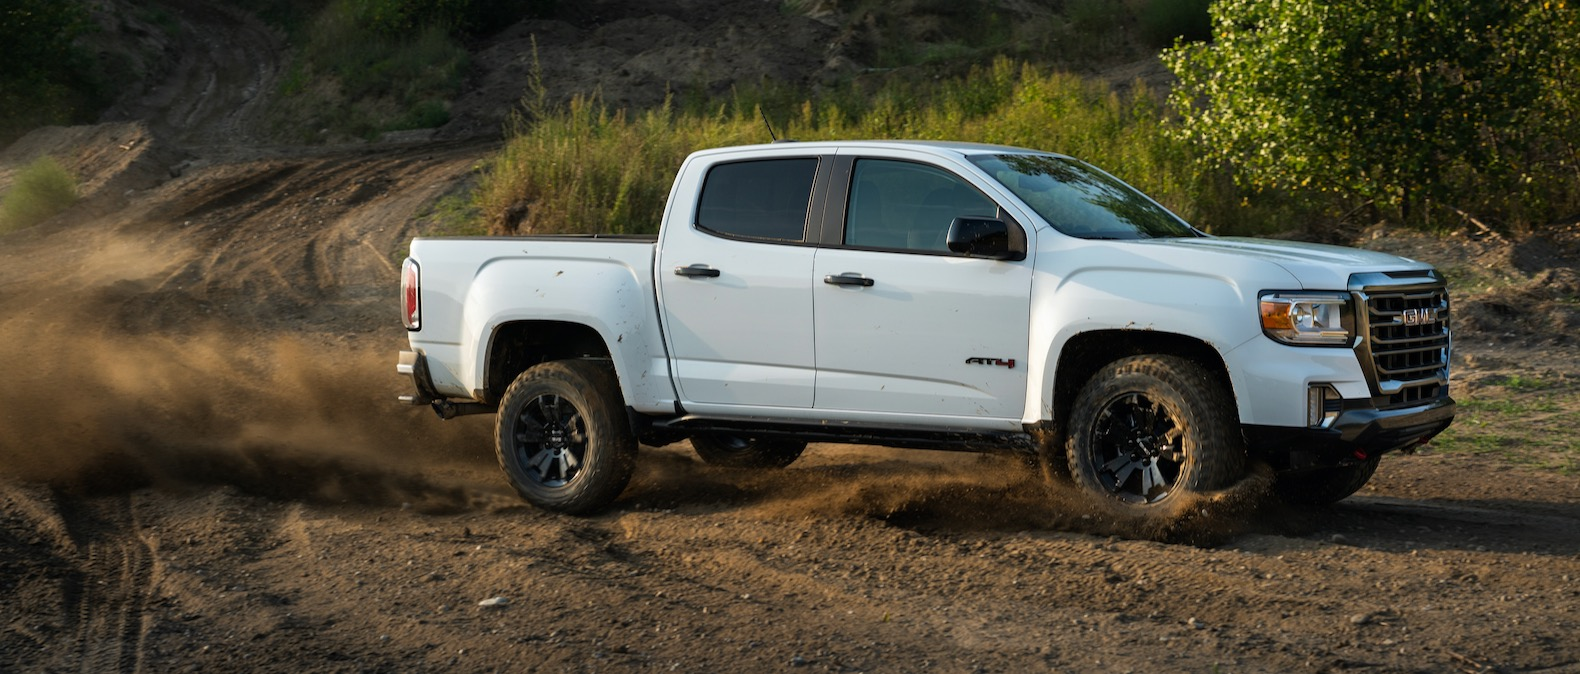 2021 gmc canyon at4 off-road performance edition revealed